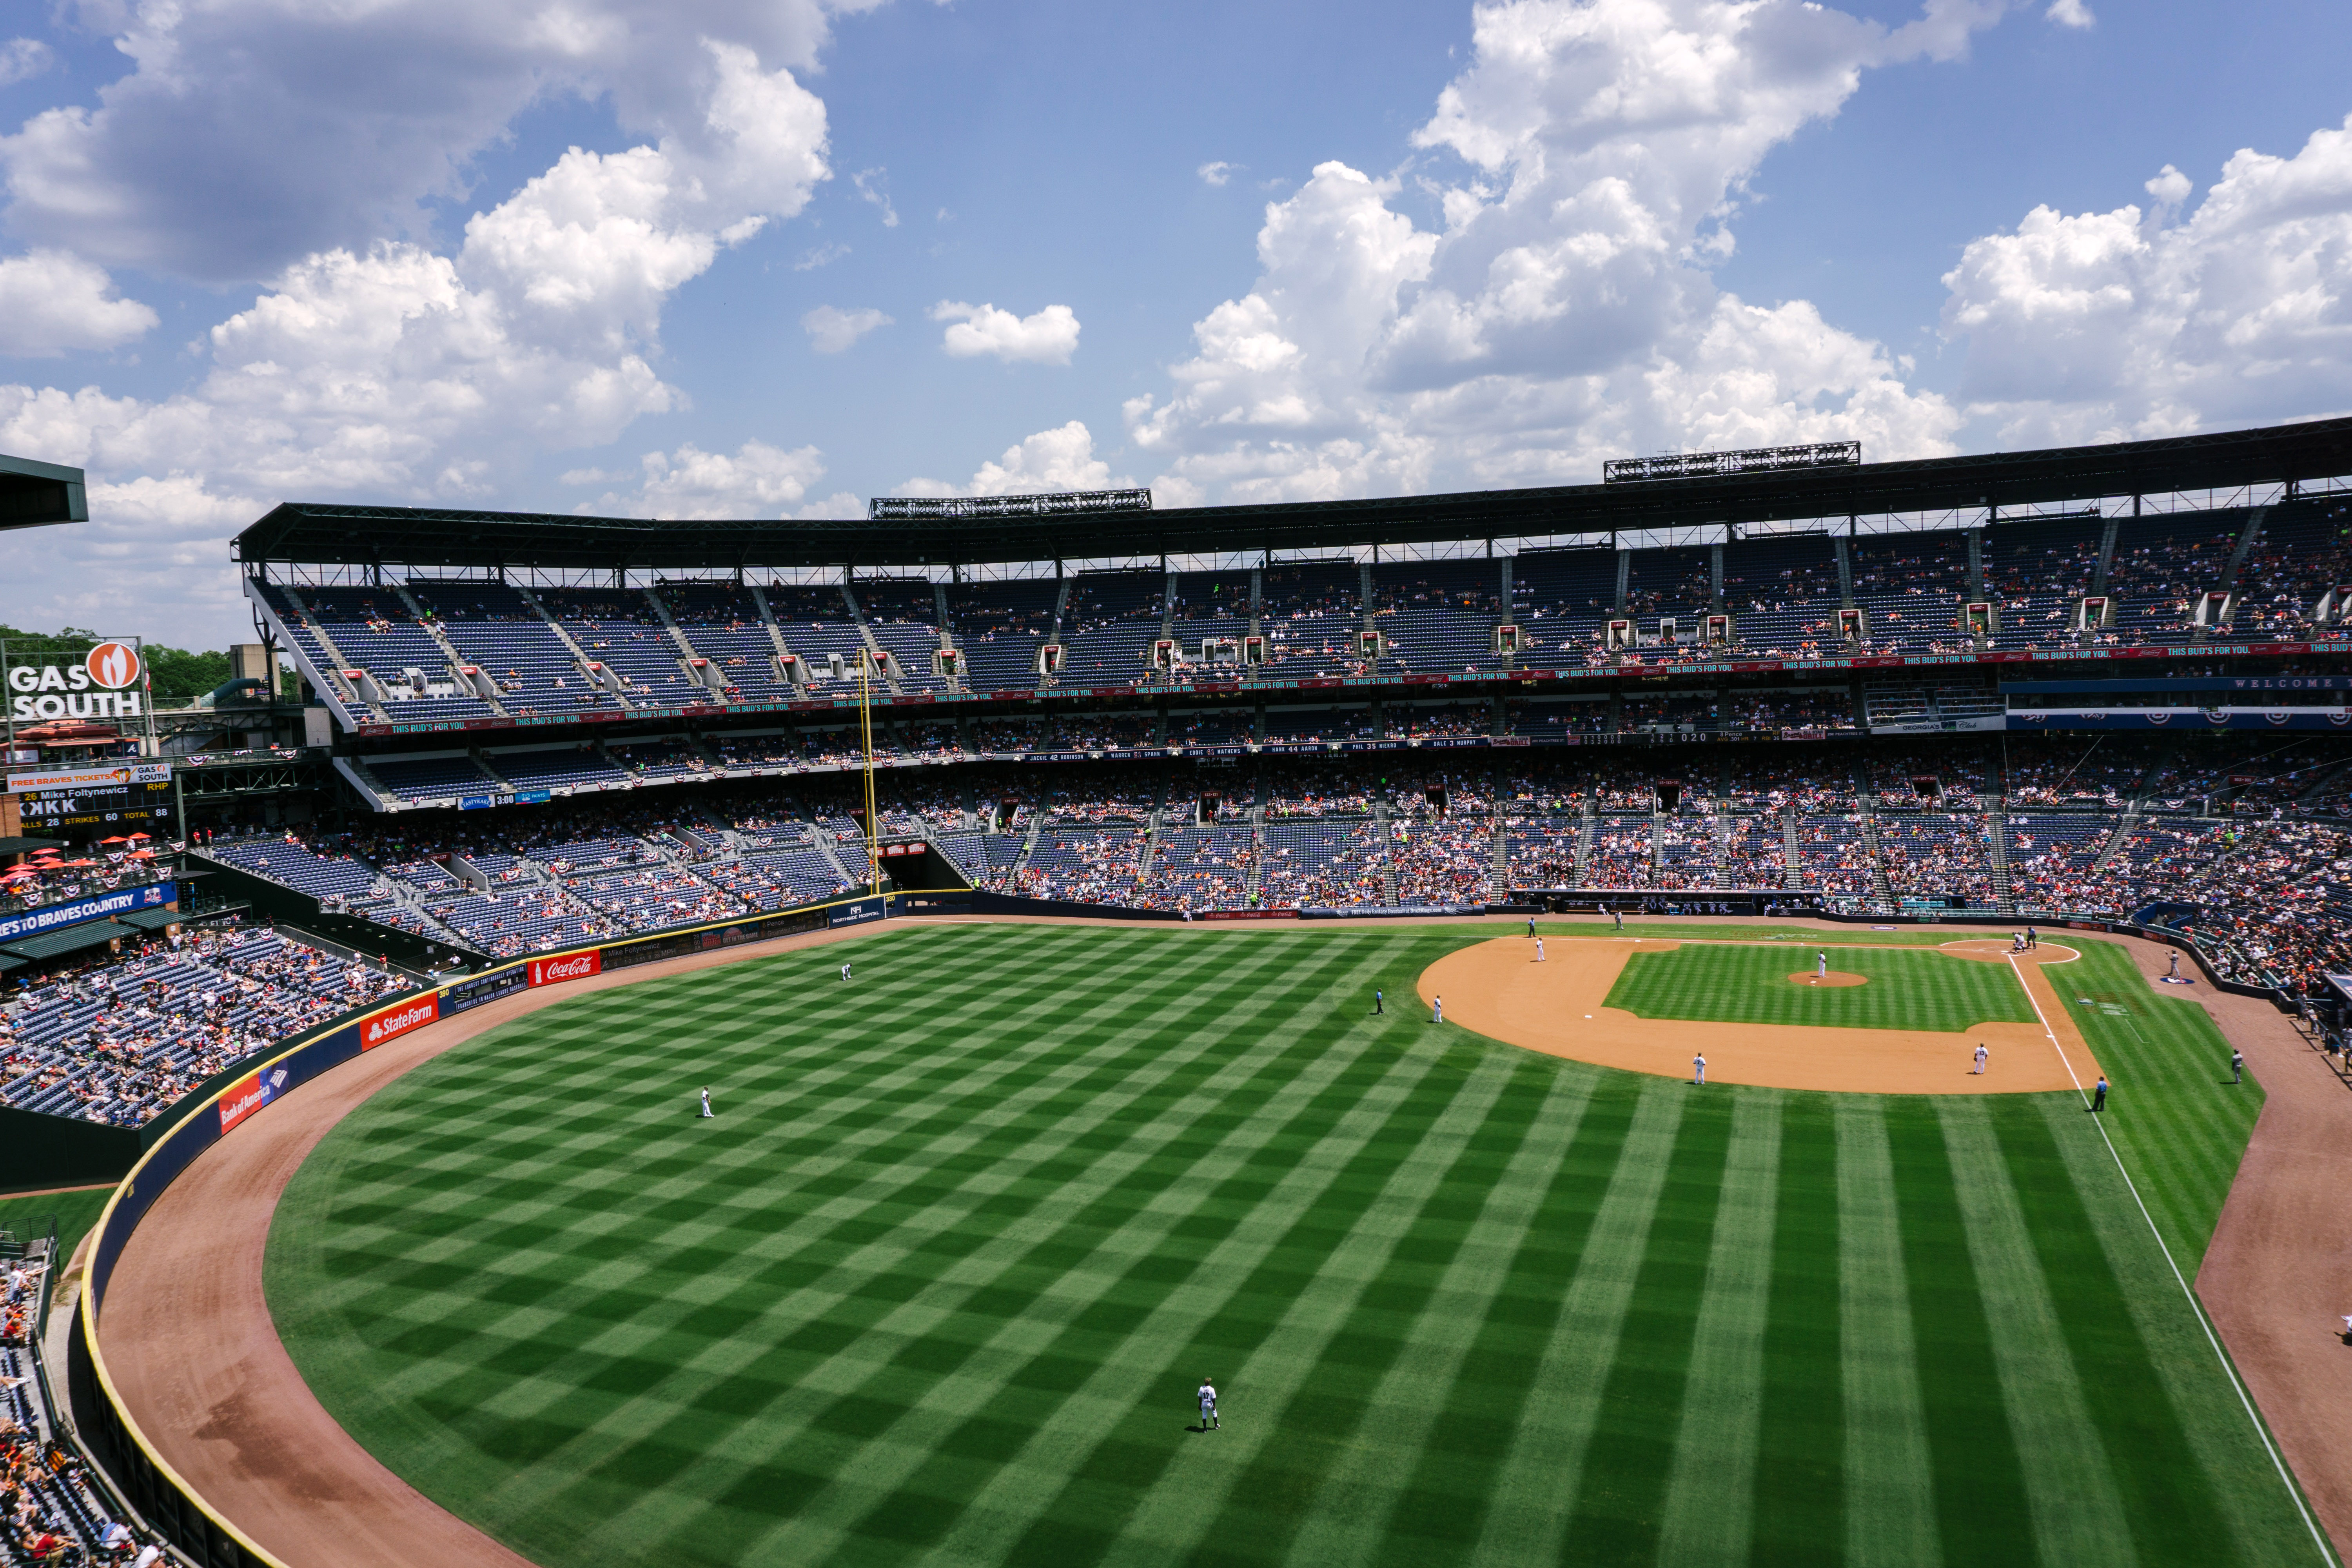 qualities of a good baseball stadium There's a lot that goes into making a great baseball stadium  plenty of  redeeming qualities to make it one of the best ballparks in the country.